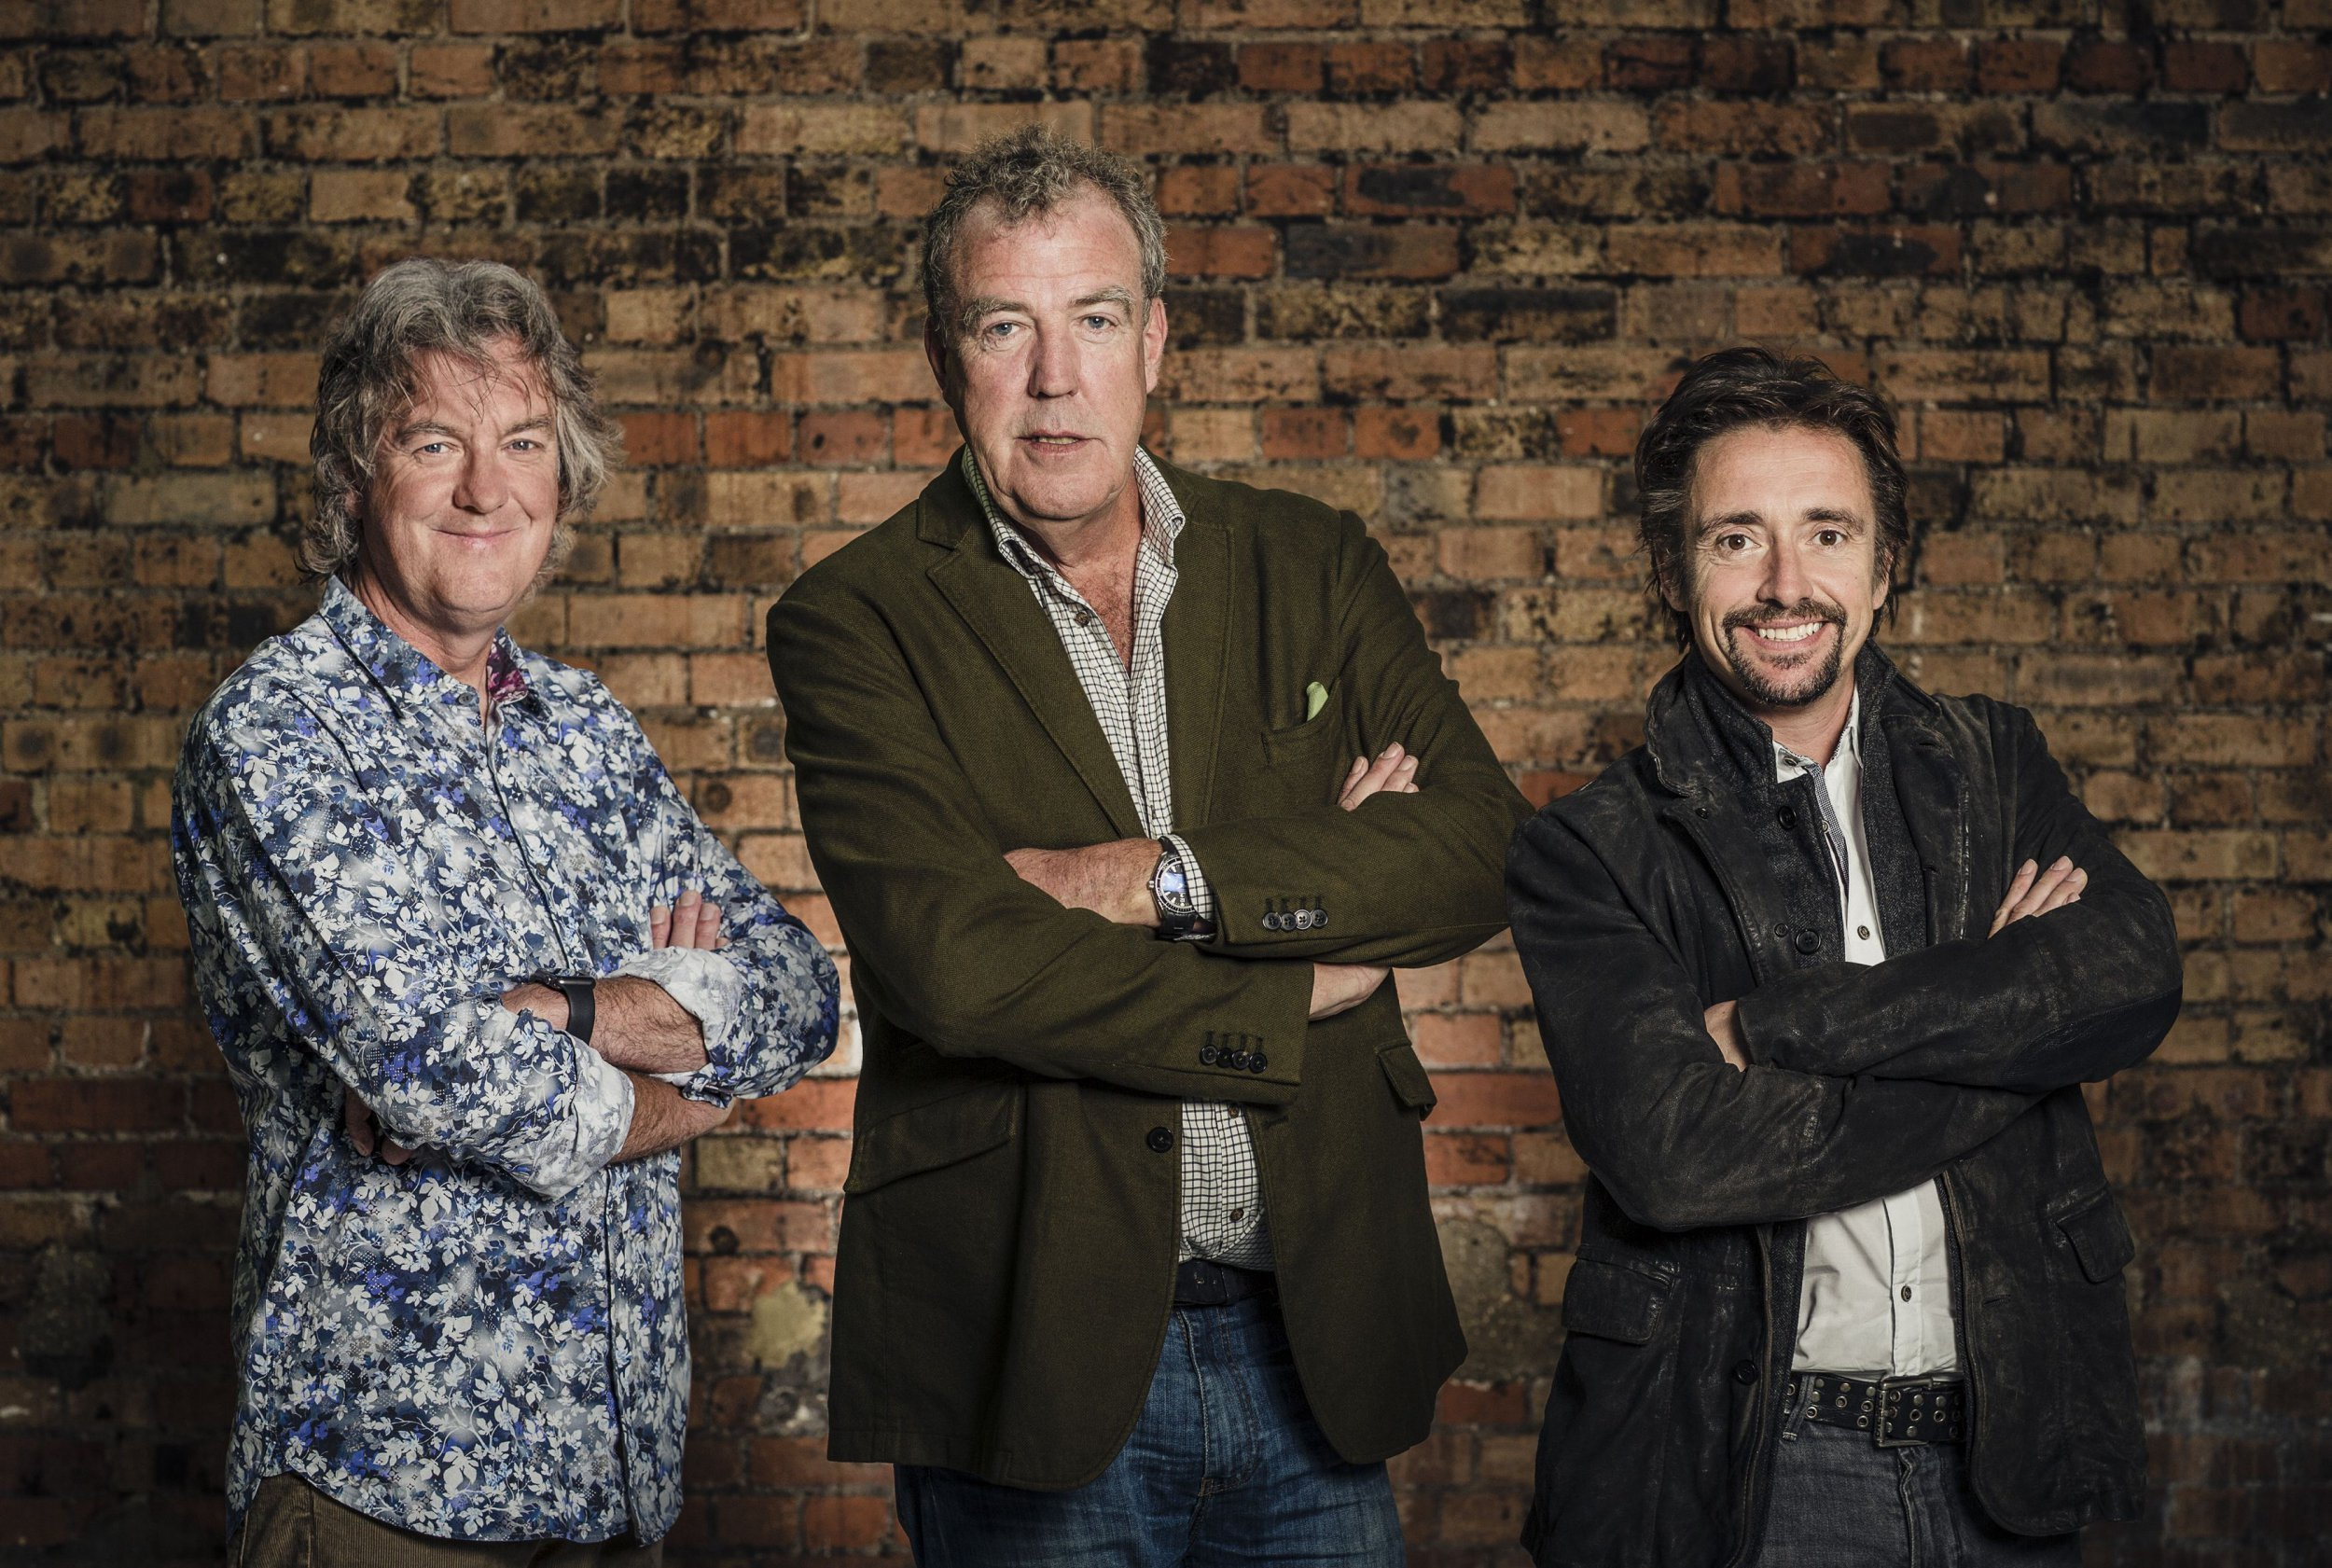 Richard Hammond and Jeremy Clarkson call Argentina 'God's cesspit' on The Grand Tour five years after Top Gear fiasco